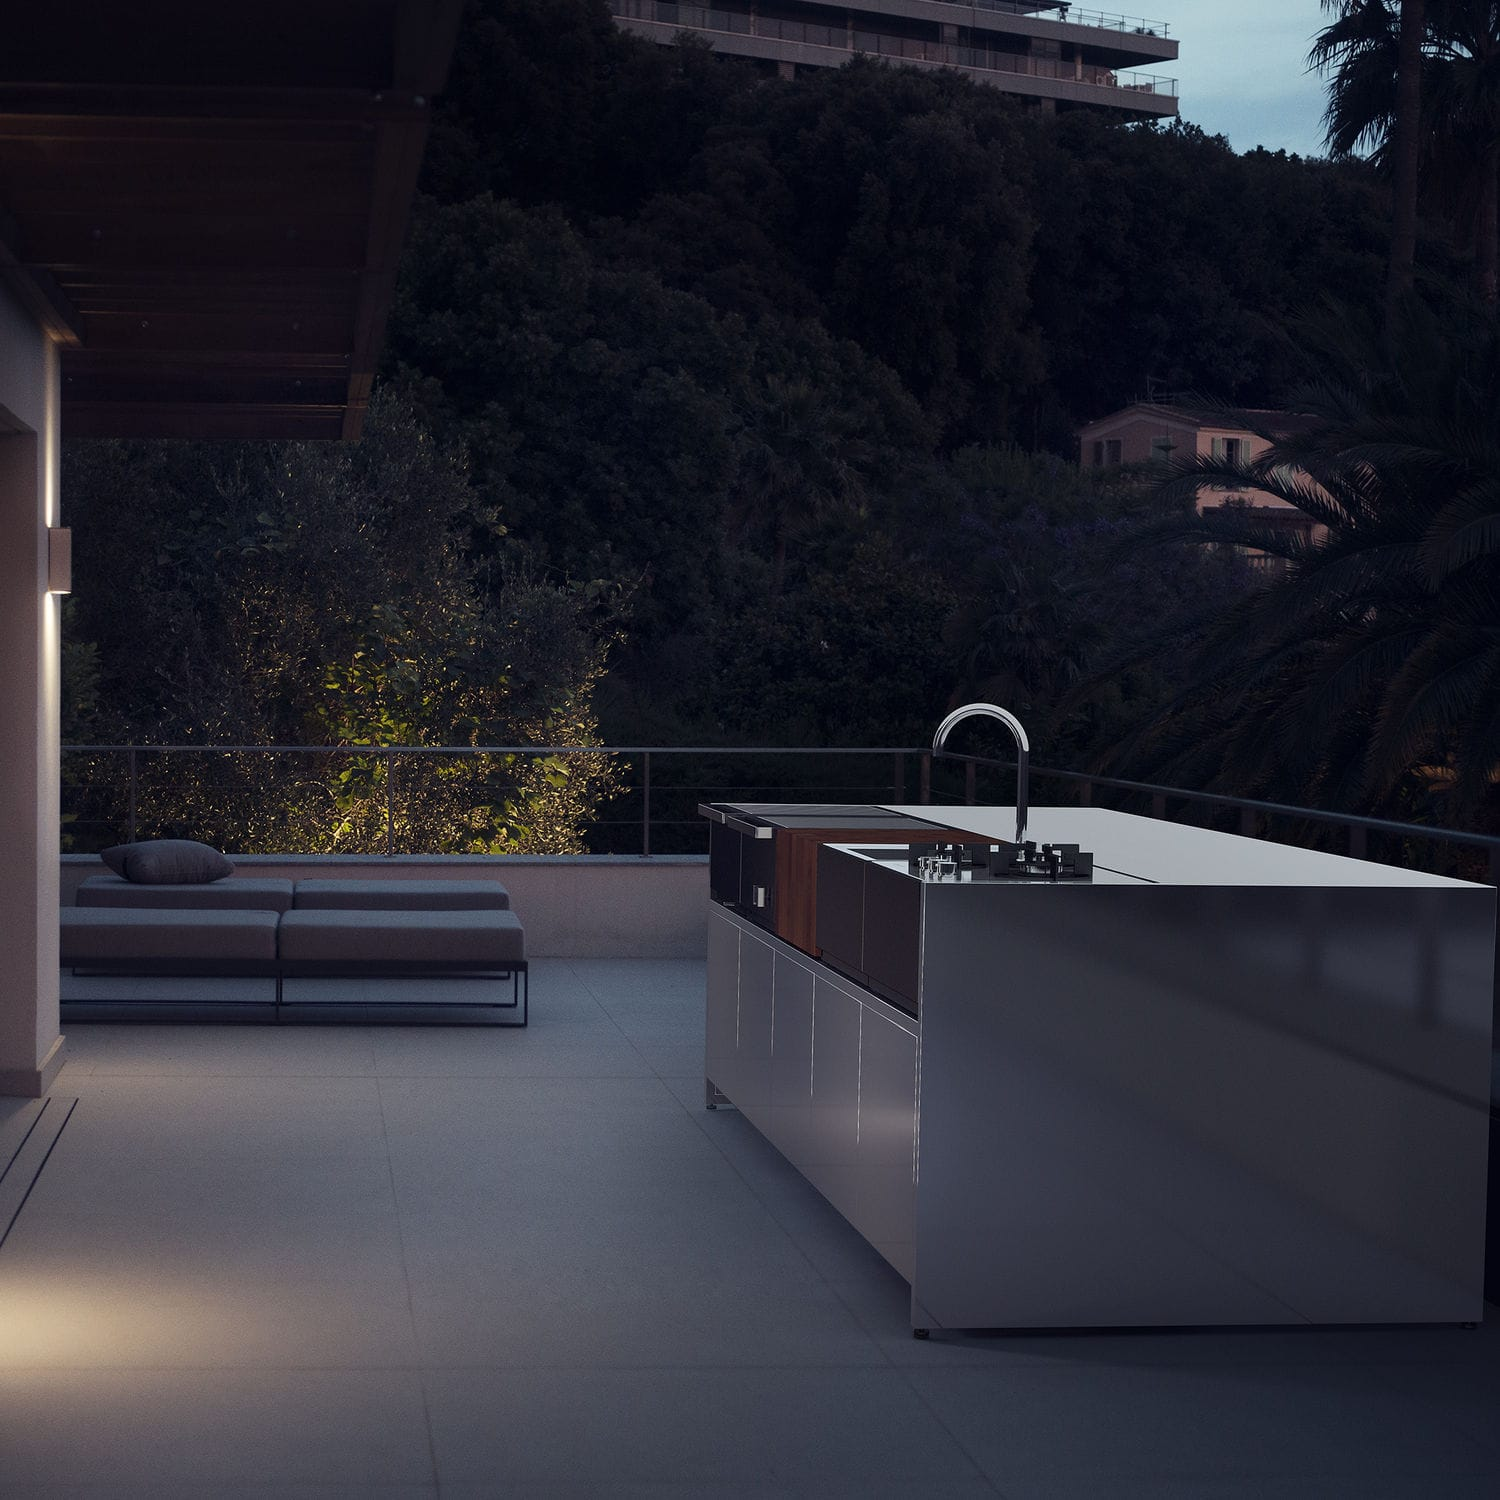 modular outdoor kitchen cabinets from china 现代风格厨房 不锈钢 岛台式 模块化 2 8 modules by broberg ridderstrale